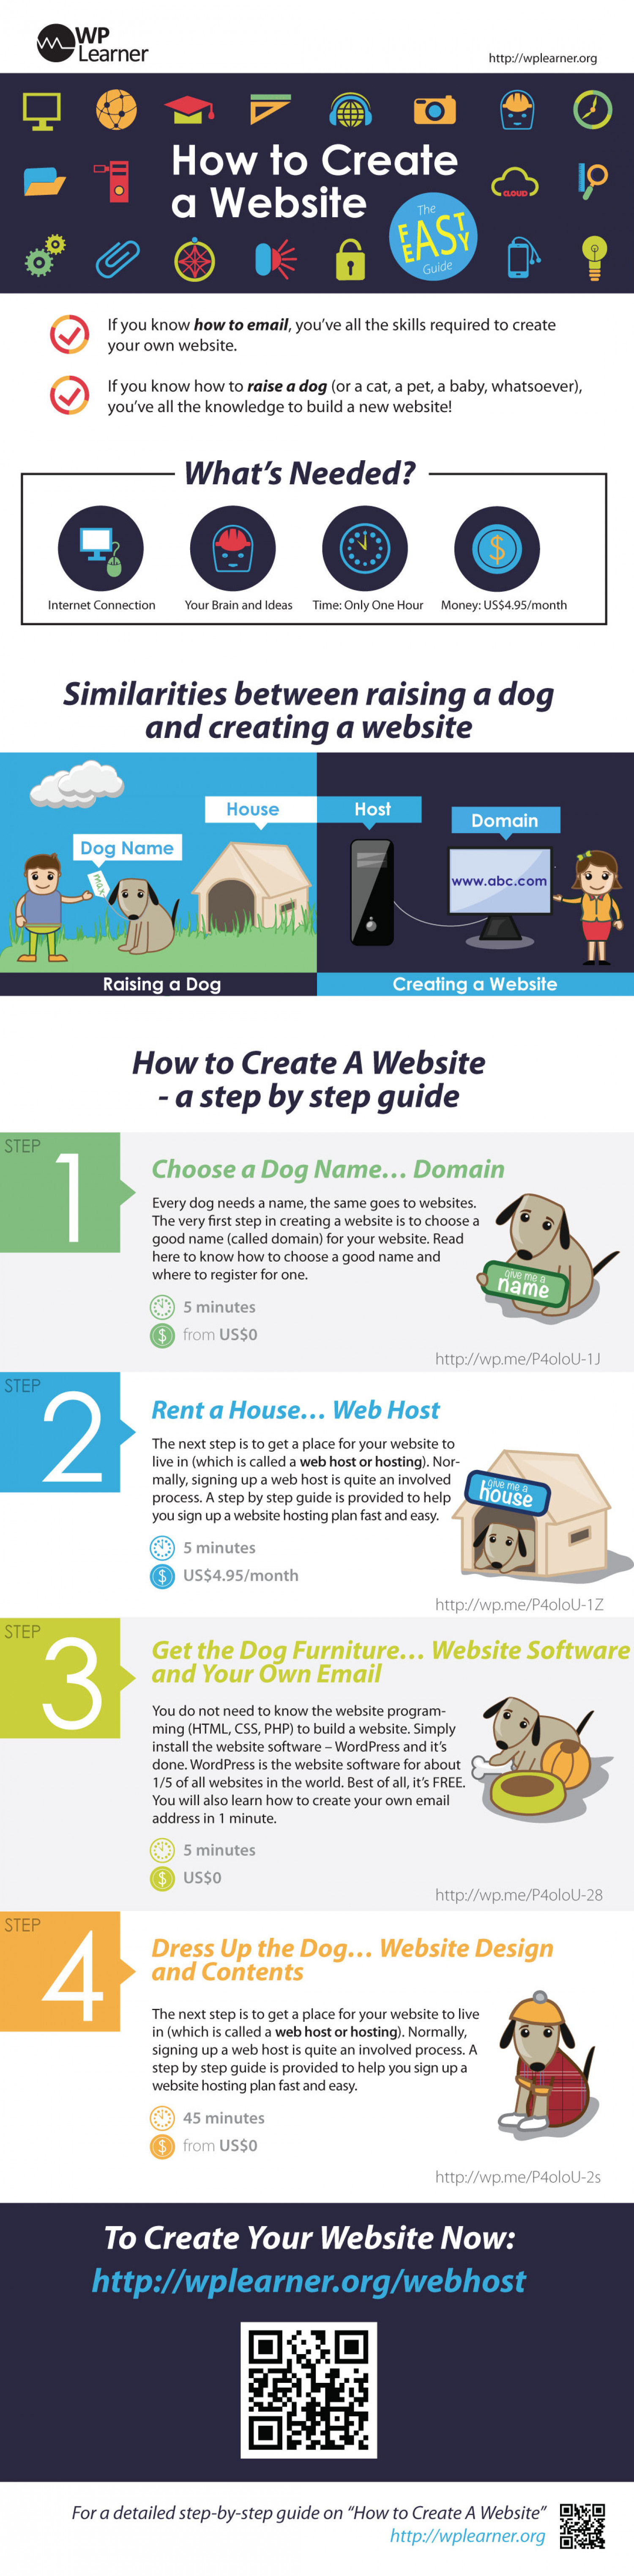 How to Create A Website Infographic